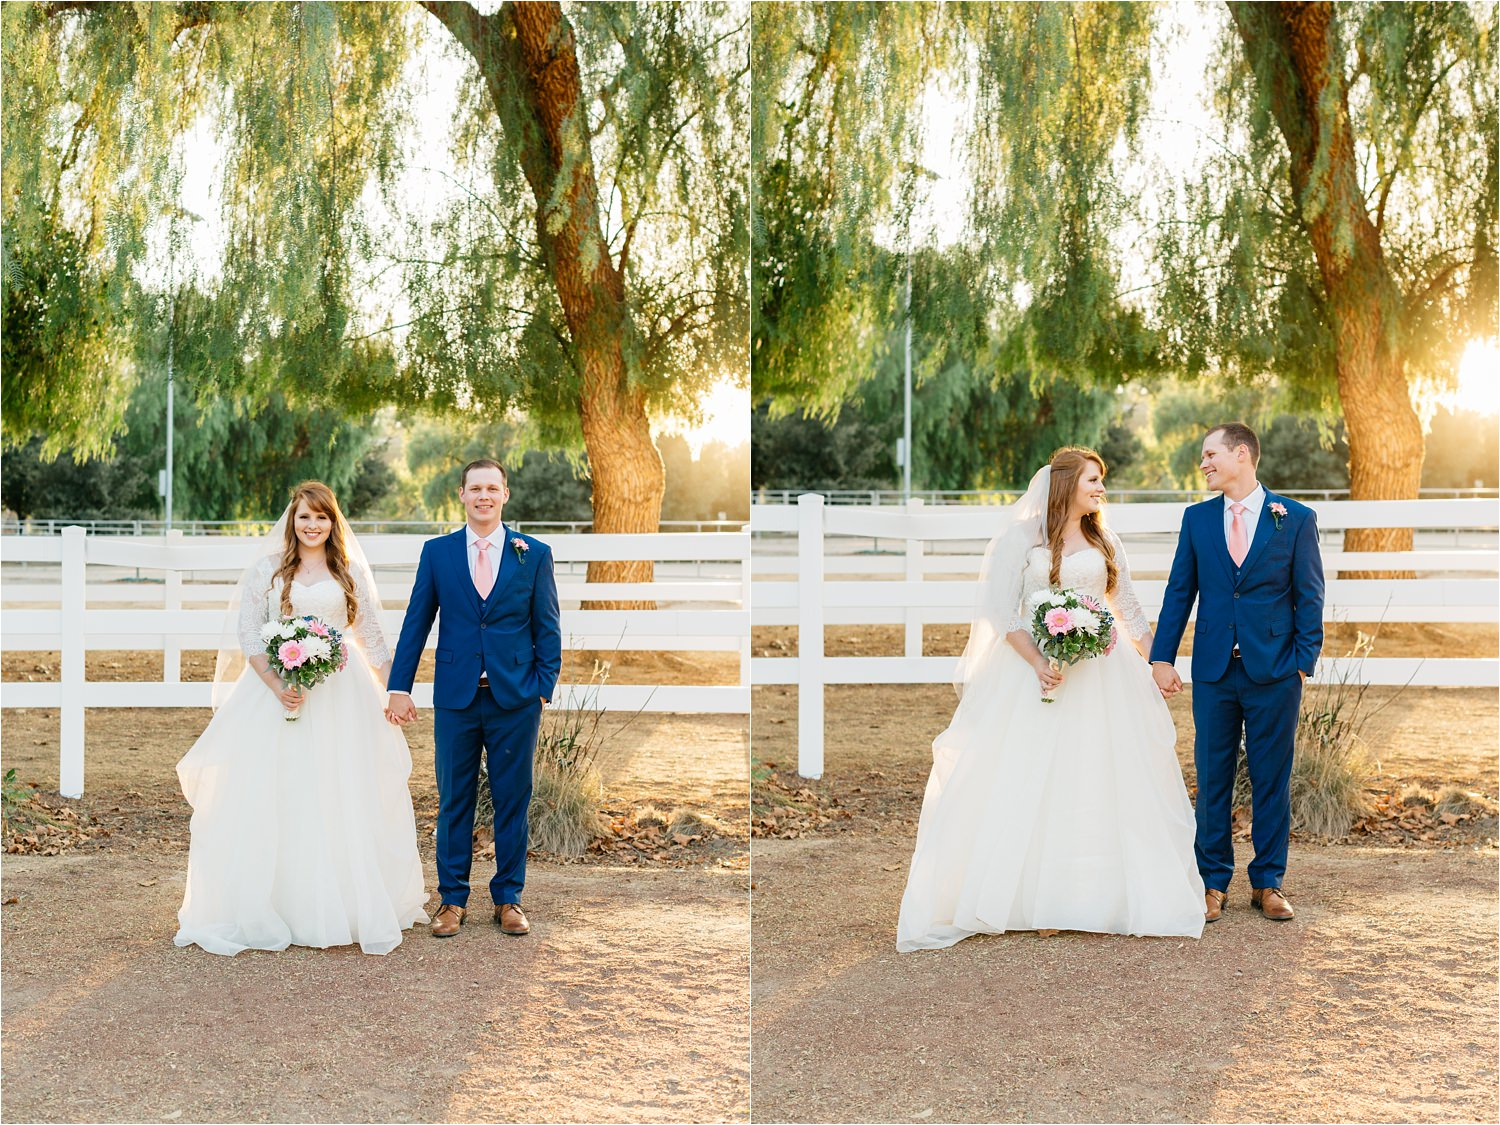 Romantic Fall Wedding in Southern California - Fall Colors - https://brittneyhannonphotography.com